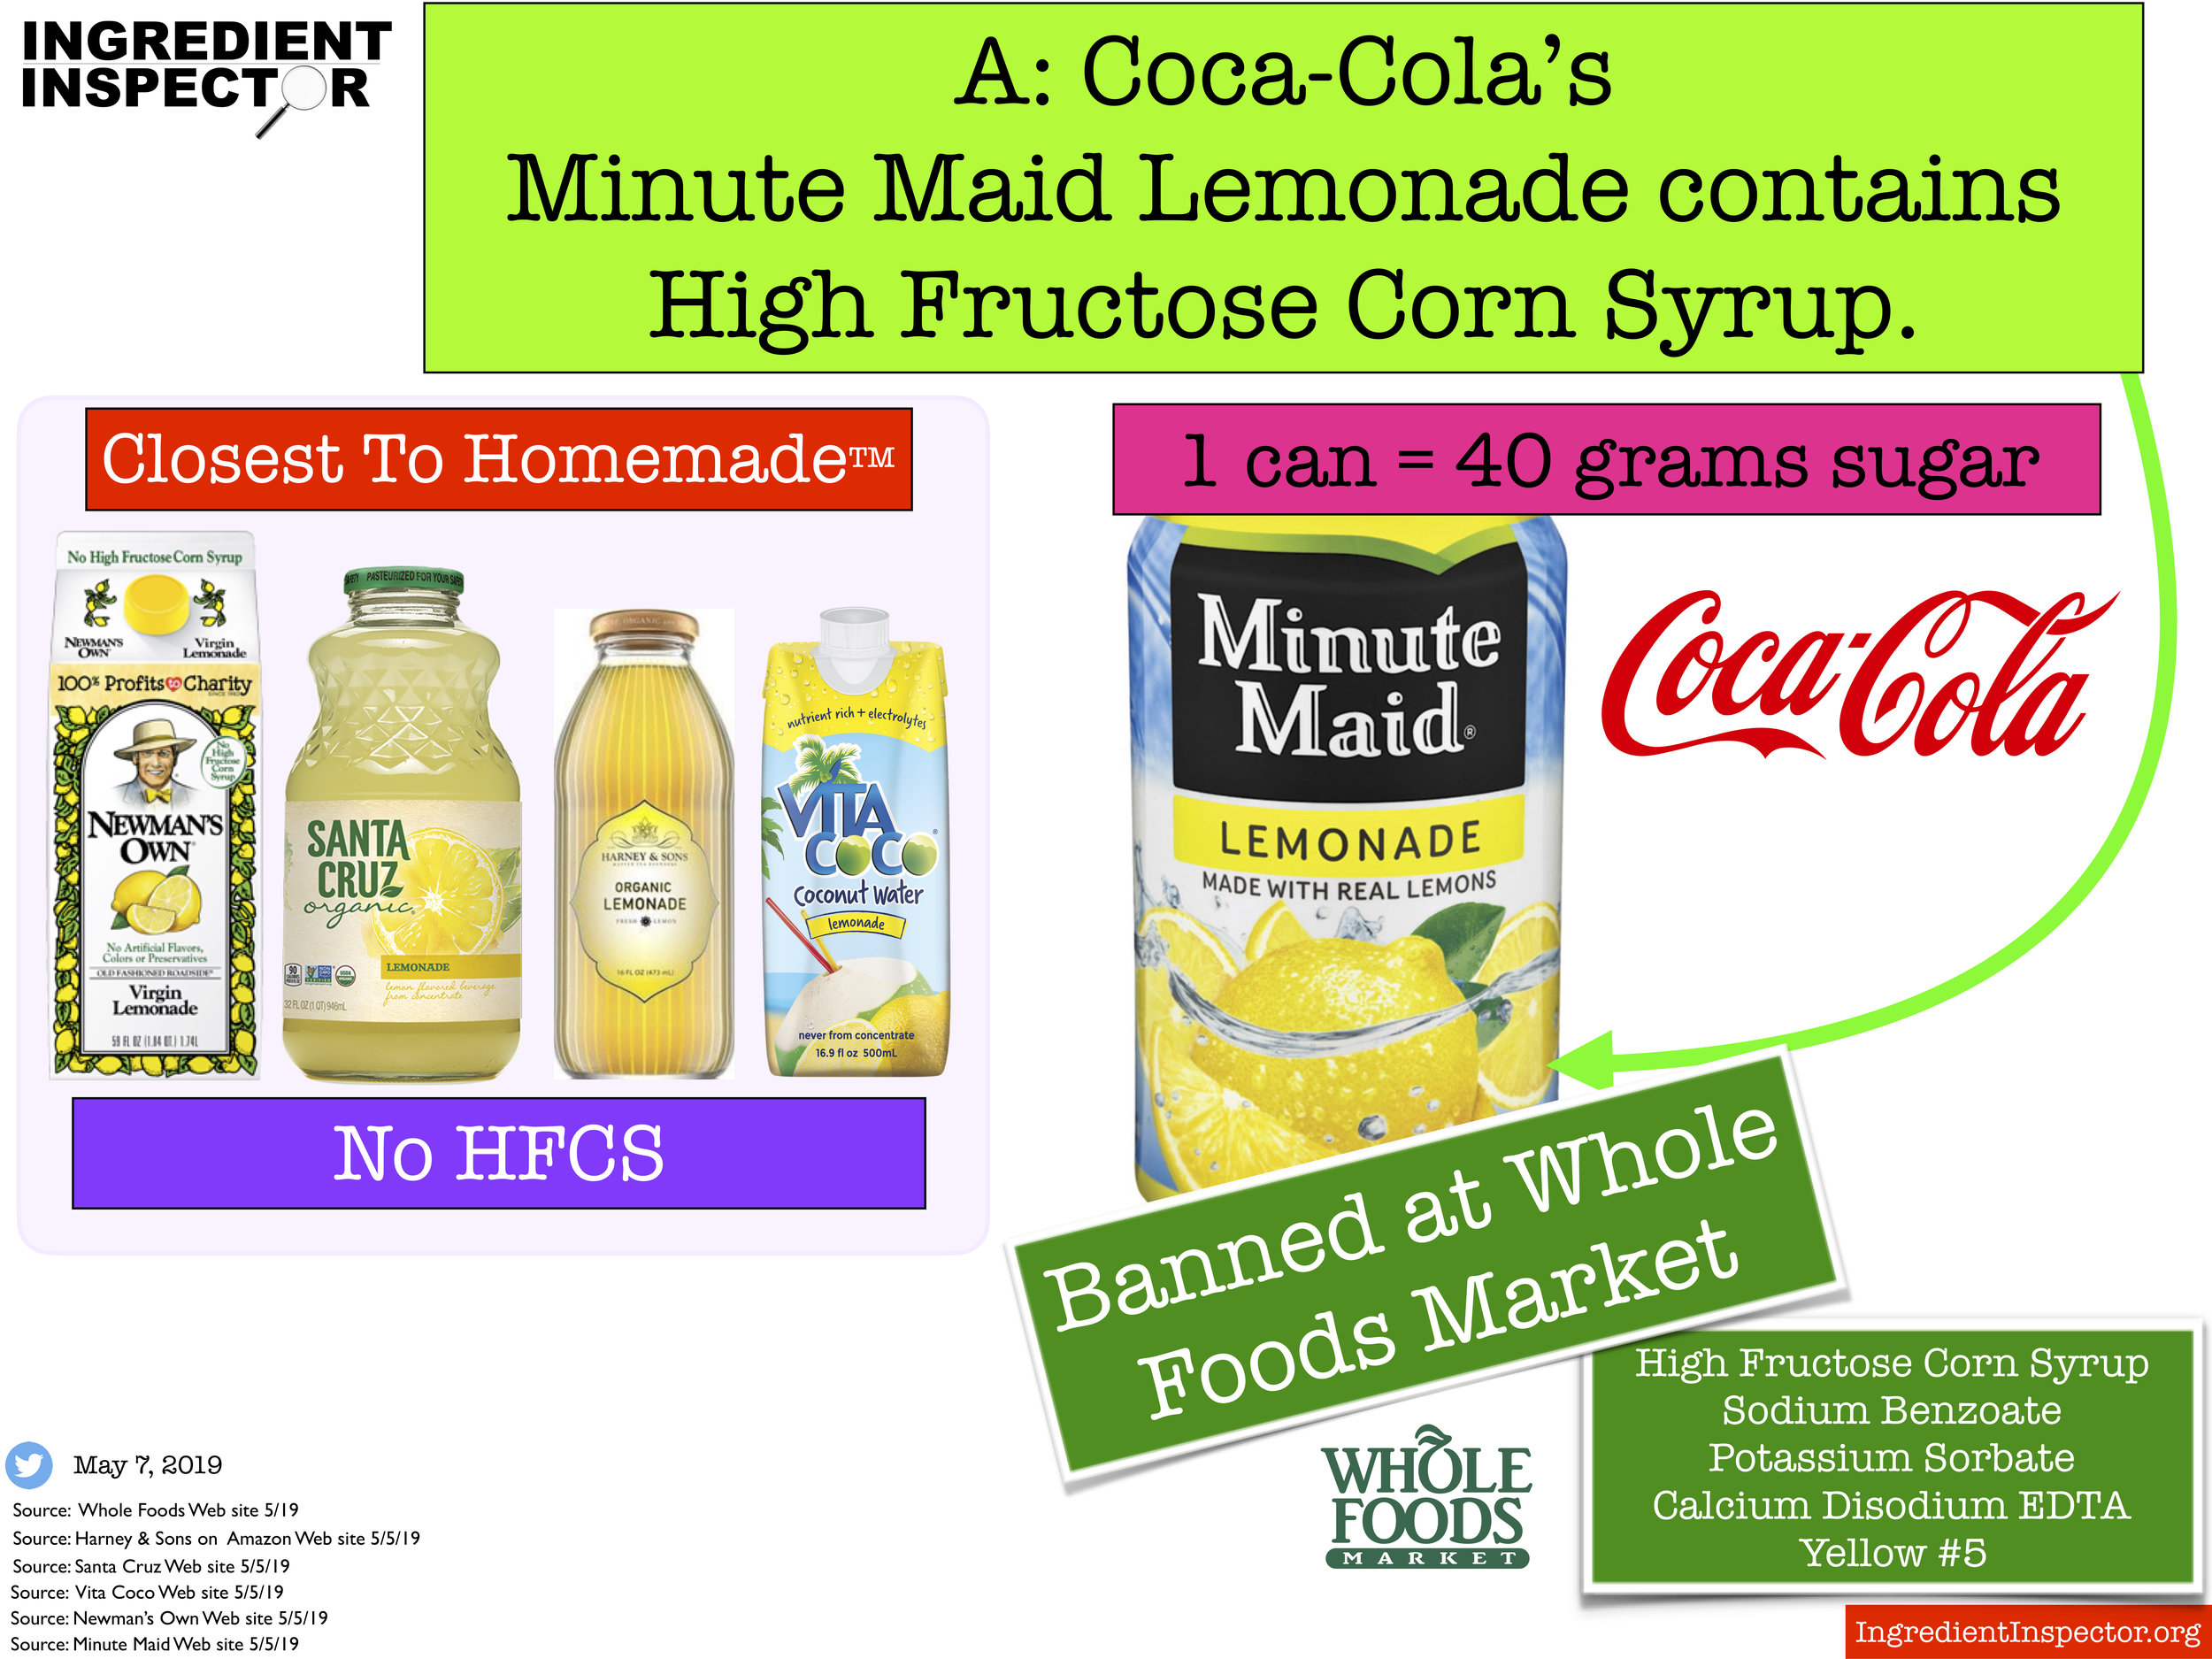 Ingredient Inspector Coca-Cola's Minute Maid Lemonade contains HFCS and 40 grams of sugar in one can.jpg